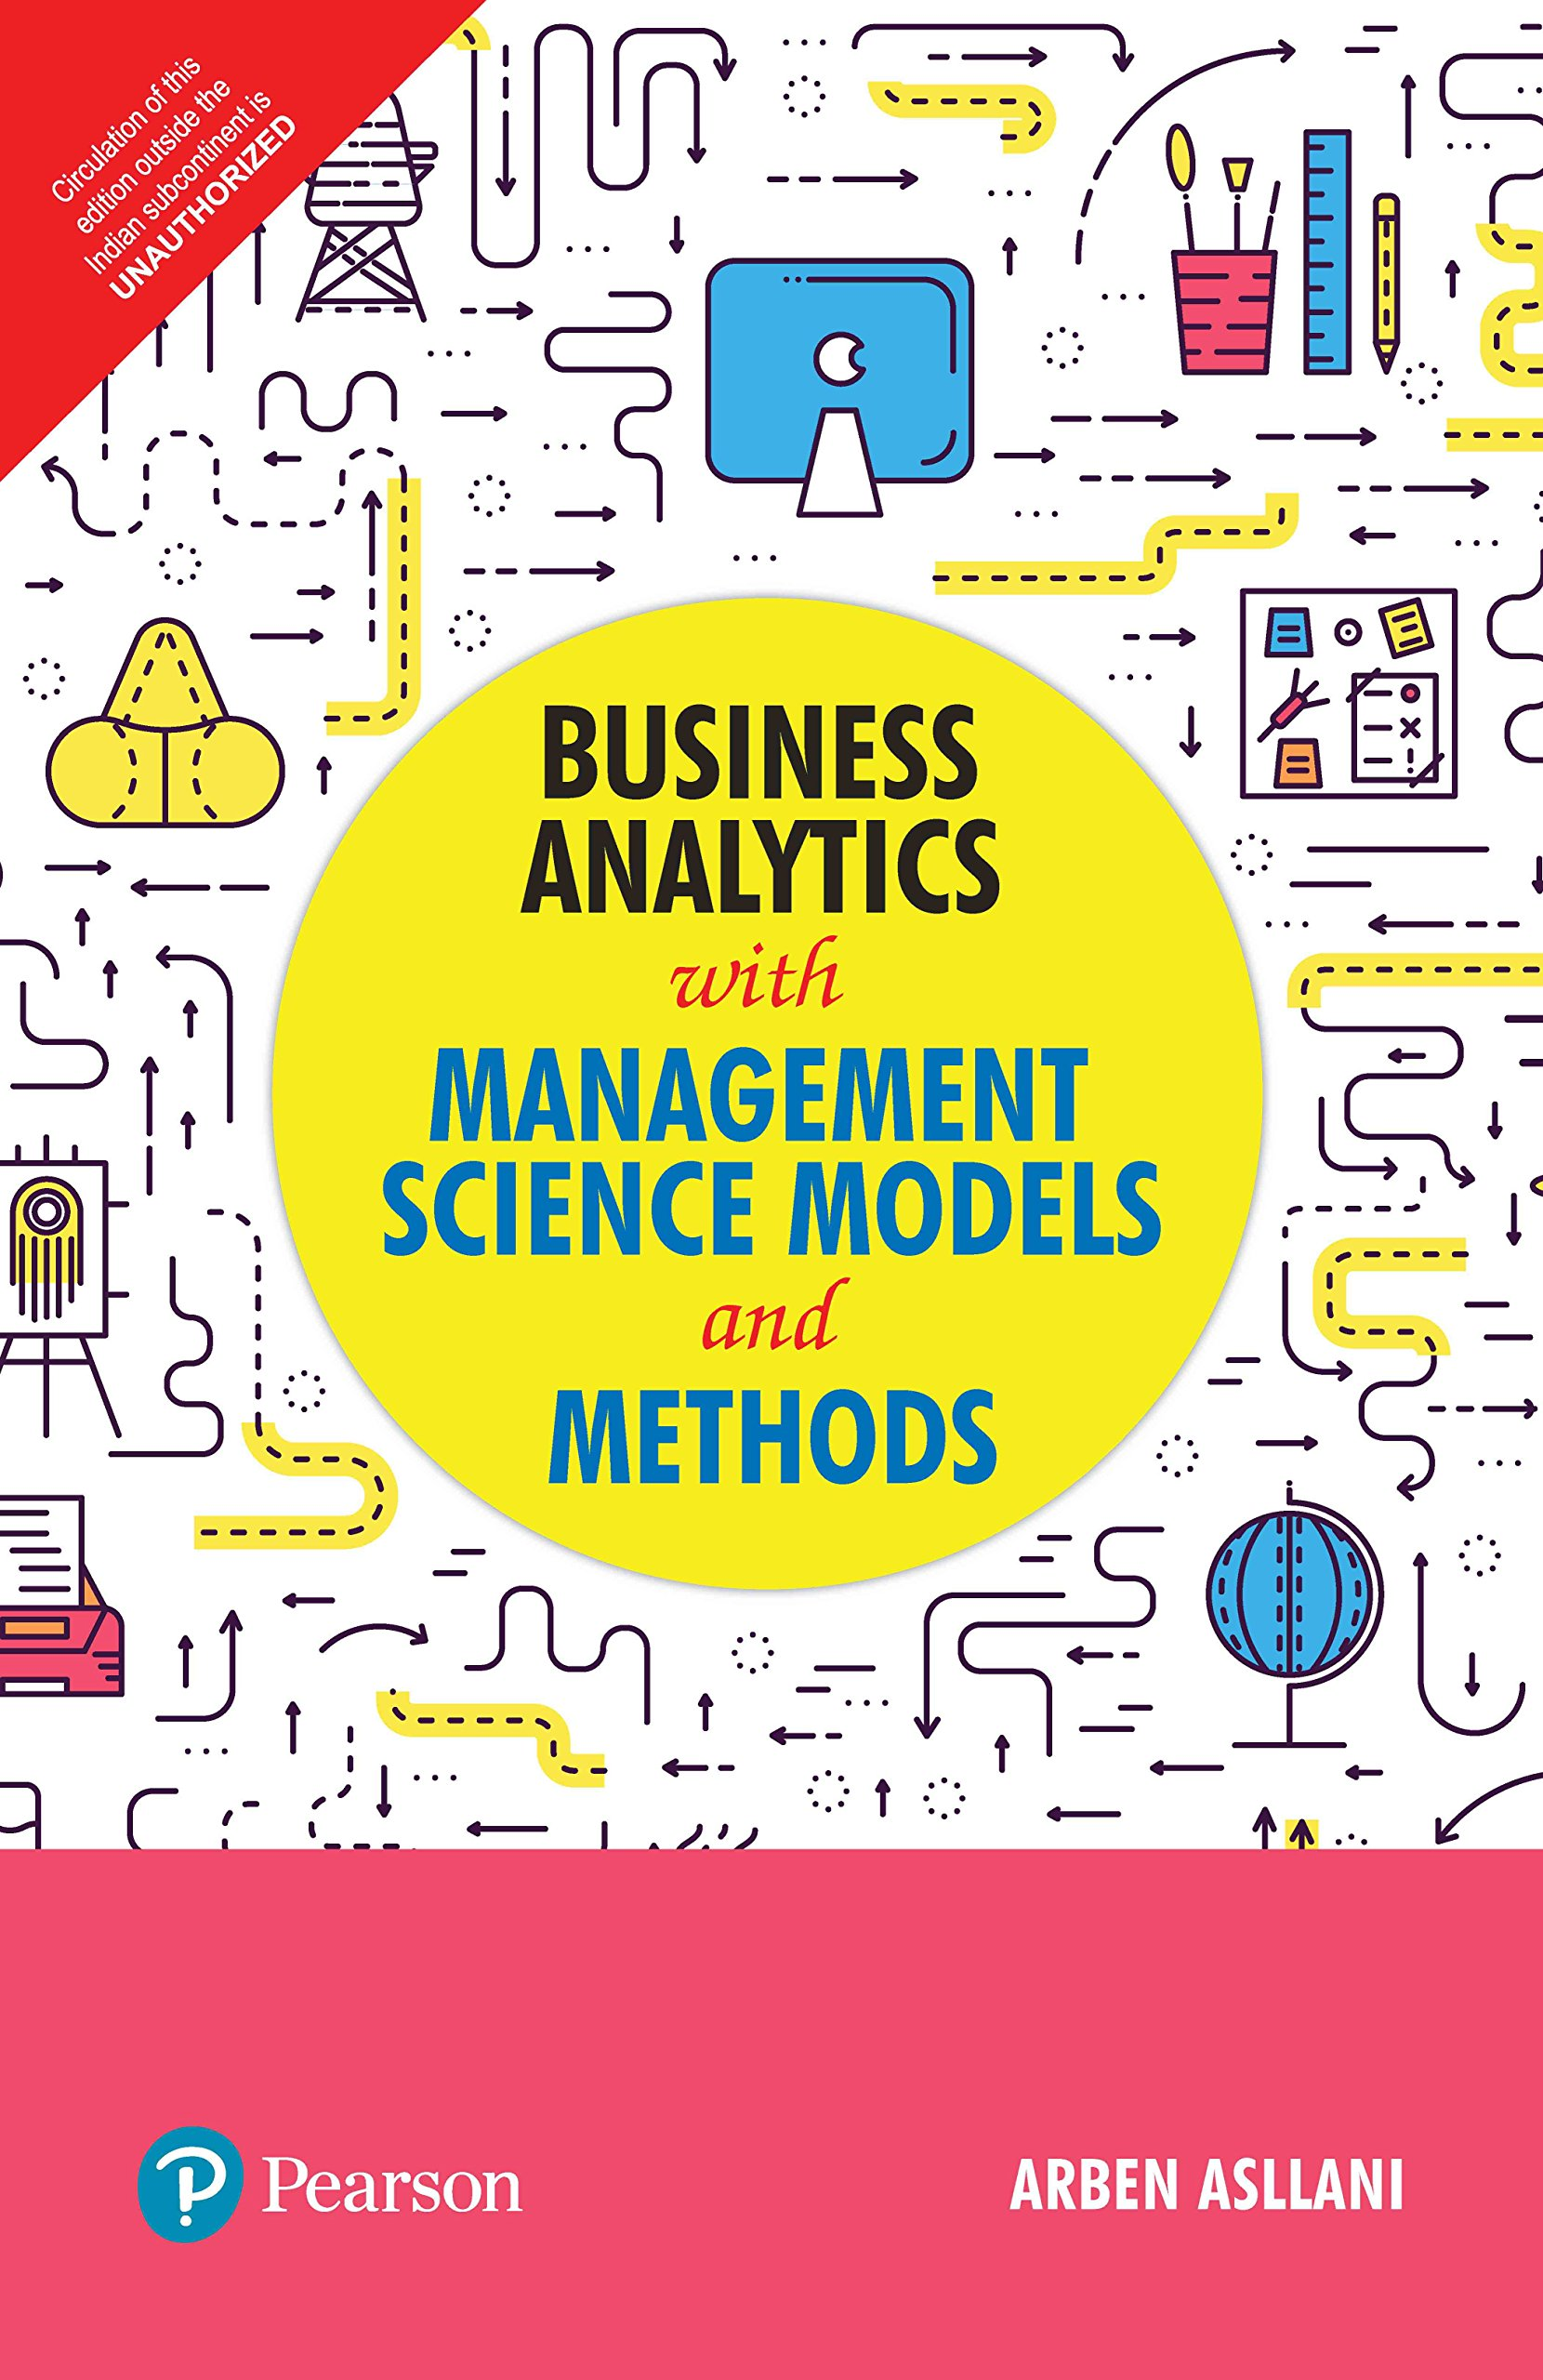 Business Analytics with Management Science Models and Methods | First Edition | By Pearson